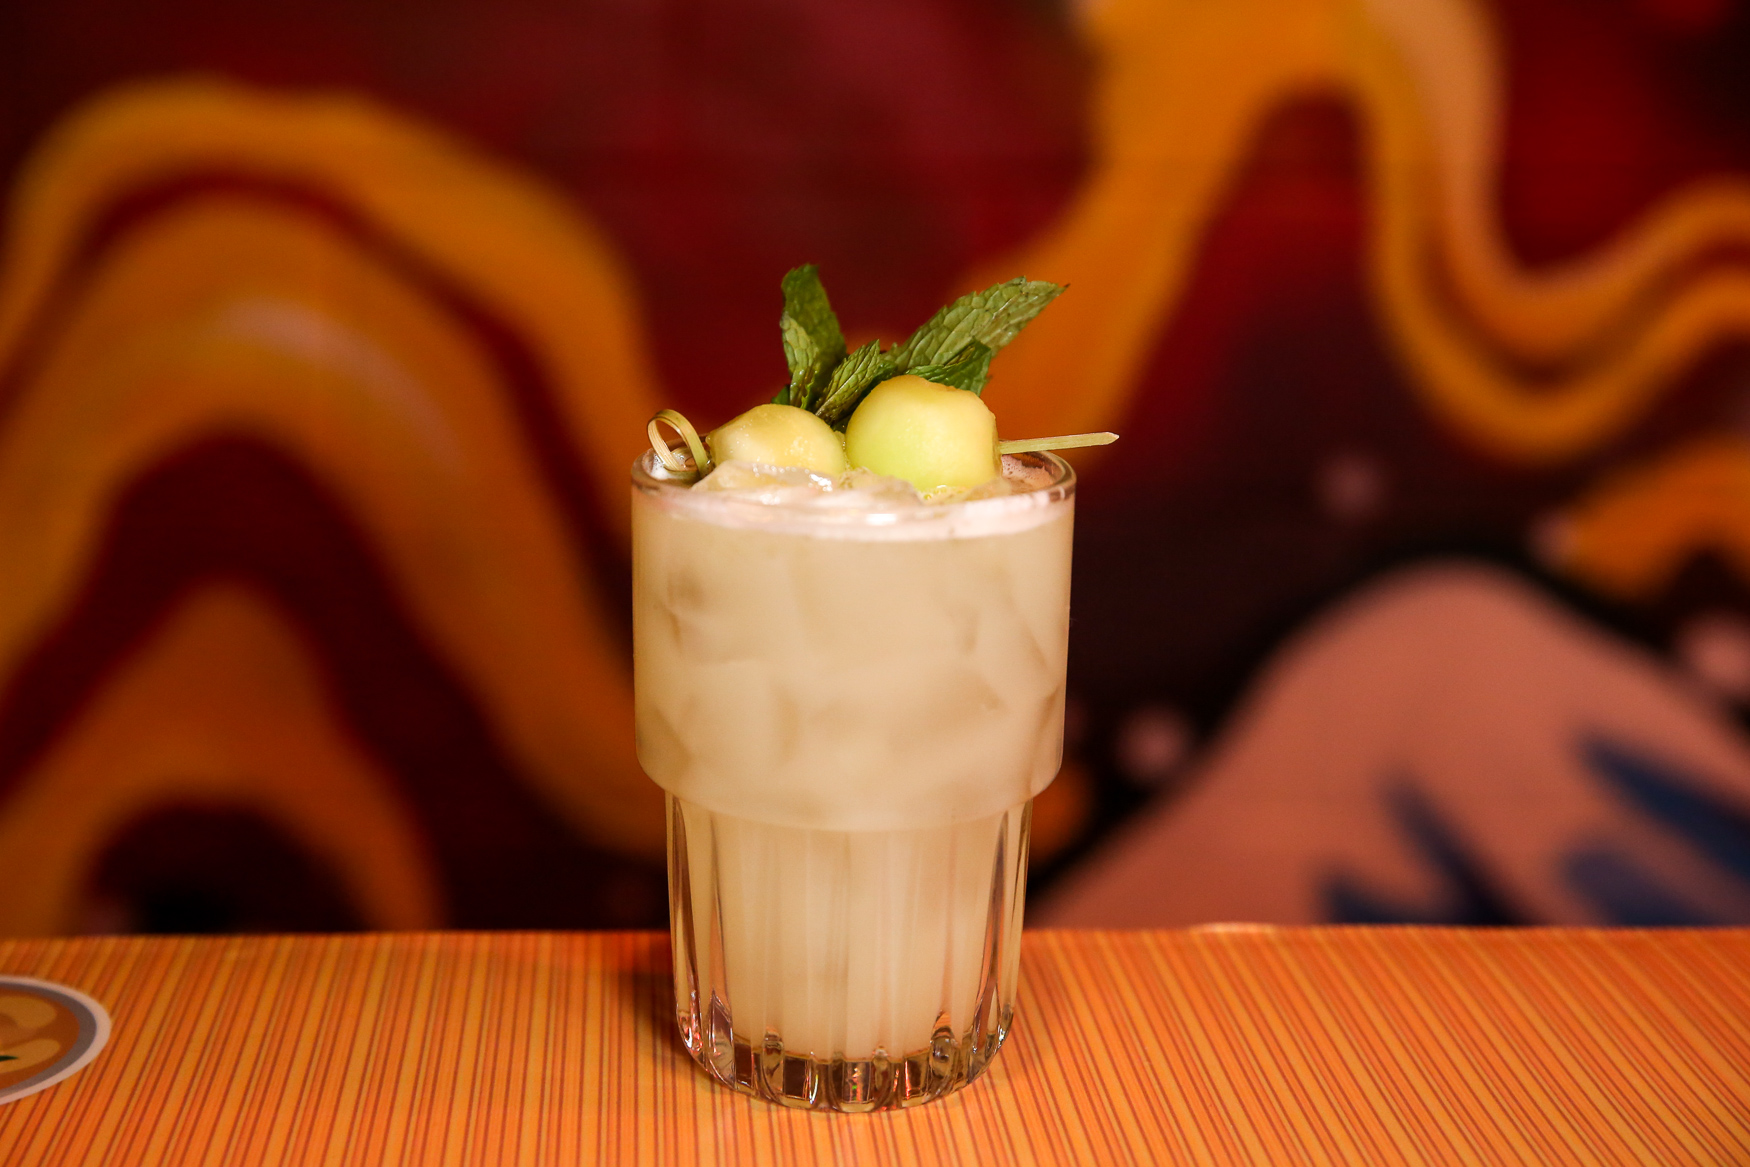 Honey See, Honeydew features sake, vermouth, koji, cucumber, honeydew and absinthe. (Amanda Andrade-Rhoades/DC Refined)